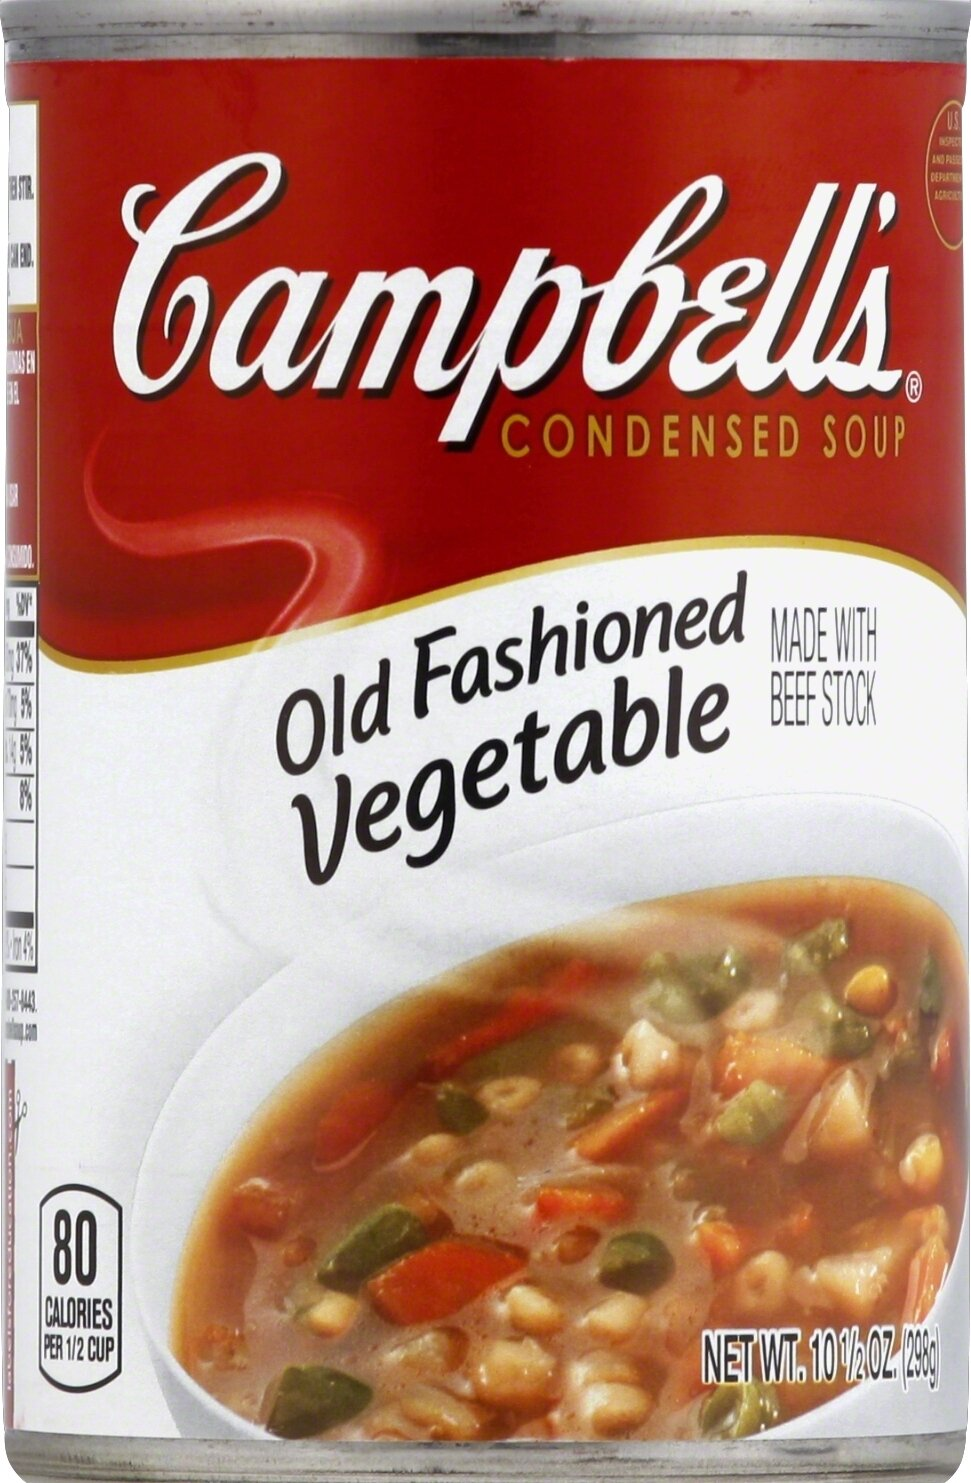 Cambell's Vegetable Soup 7 1/4 oz